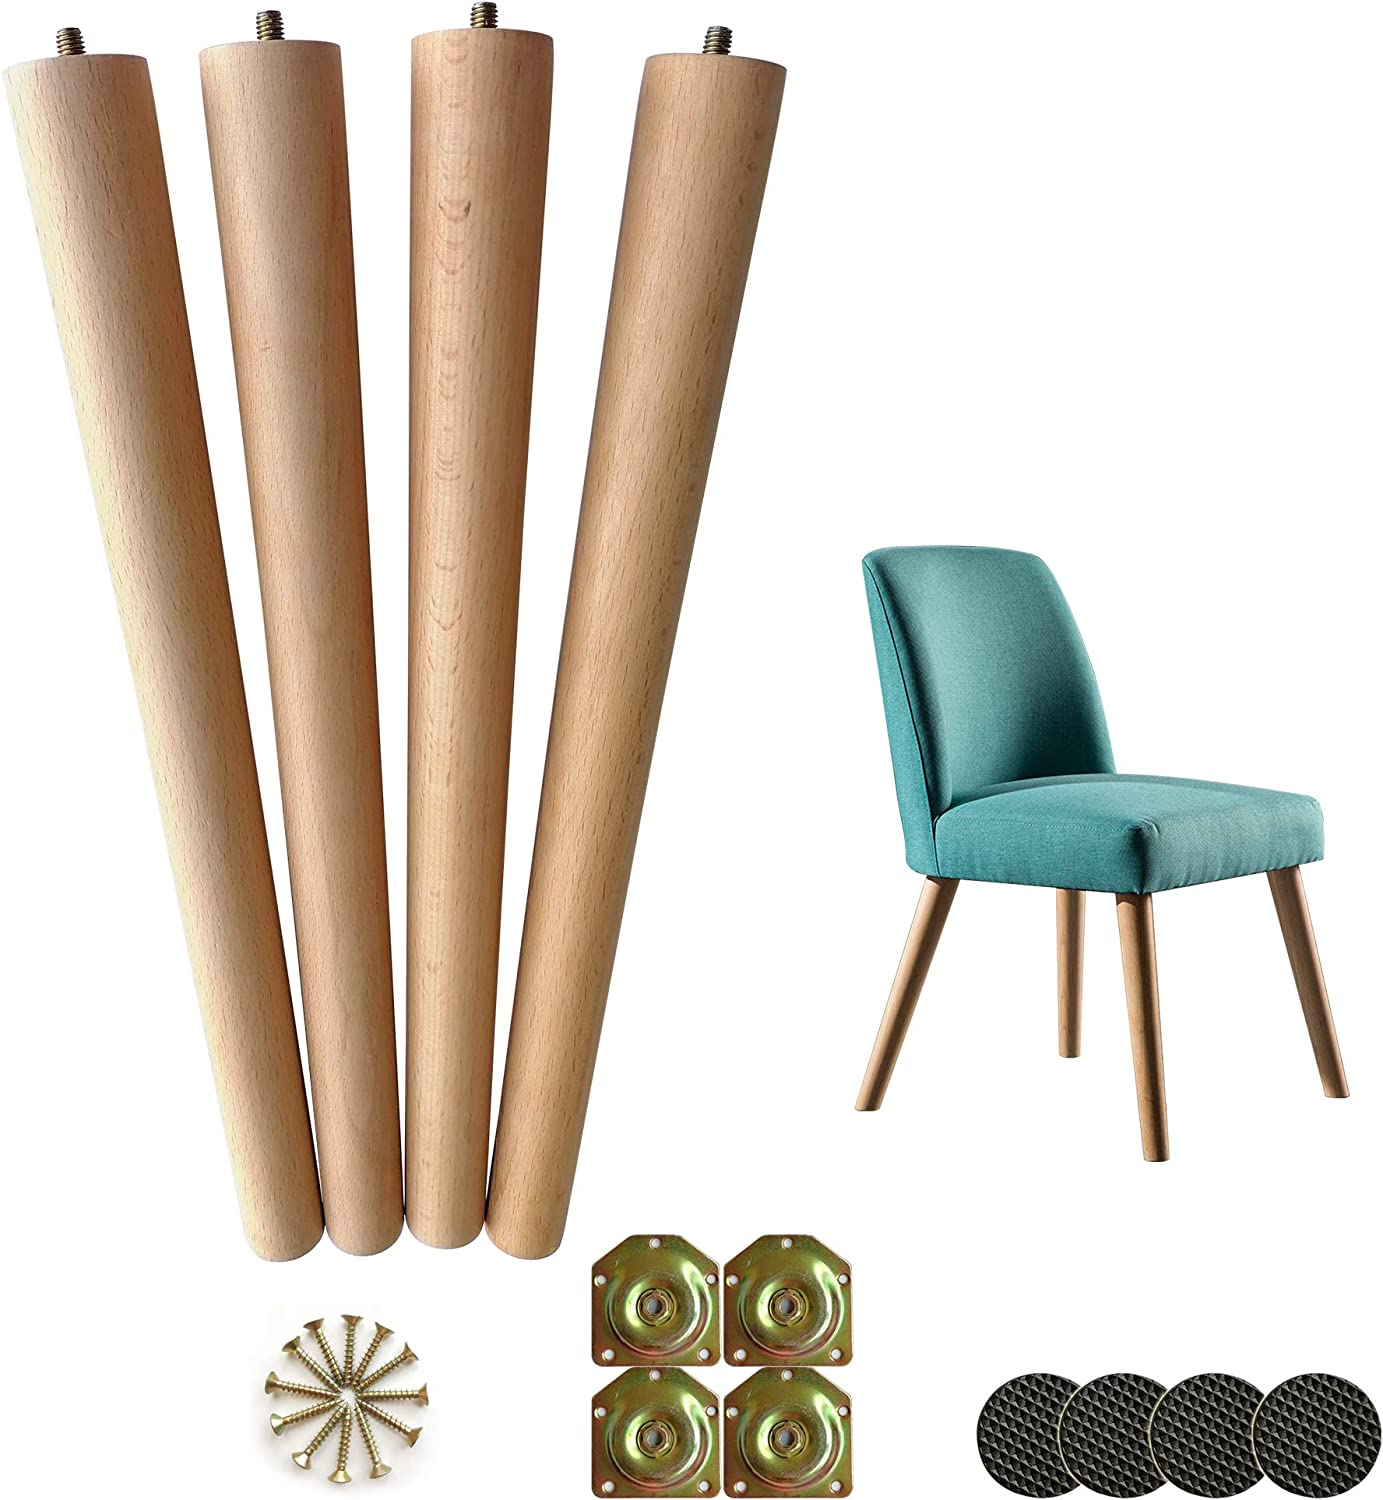 LIANGYUN Table Legs 16 Inch Wood Furniture Chair Legs ,Mid Century Modern Style Tapered Wood Furniture Legs with M8 Hanger Bolt for Coffee End Table,Set of 4,Accessories Included